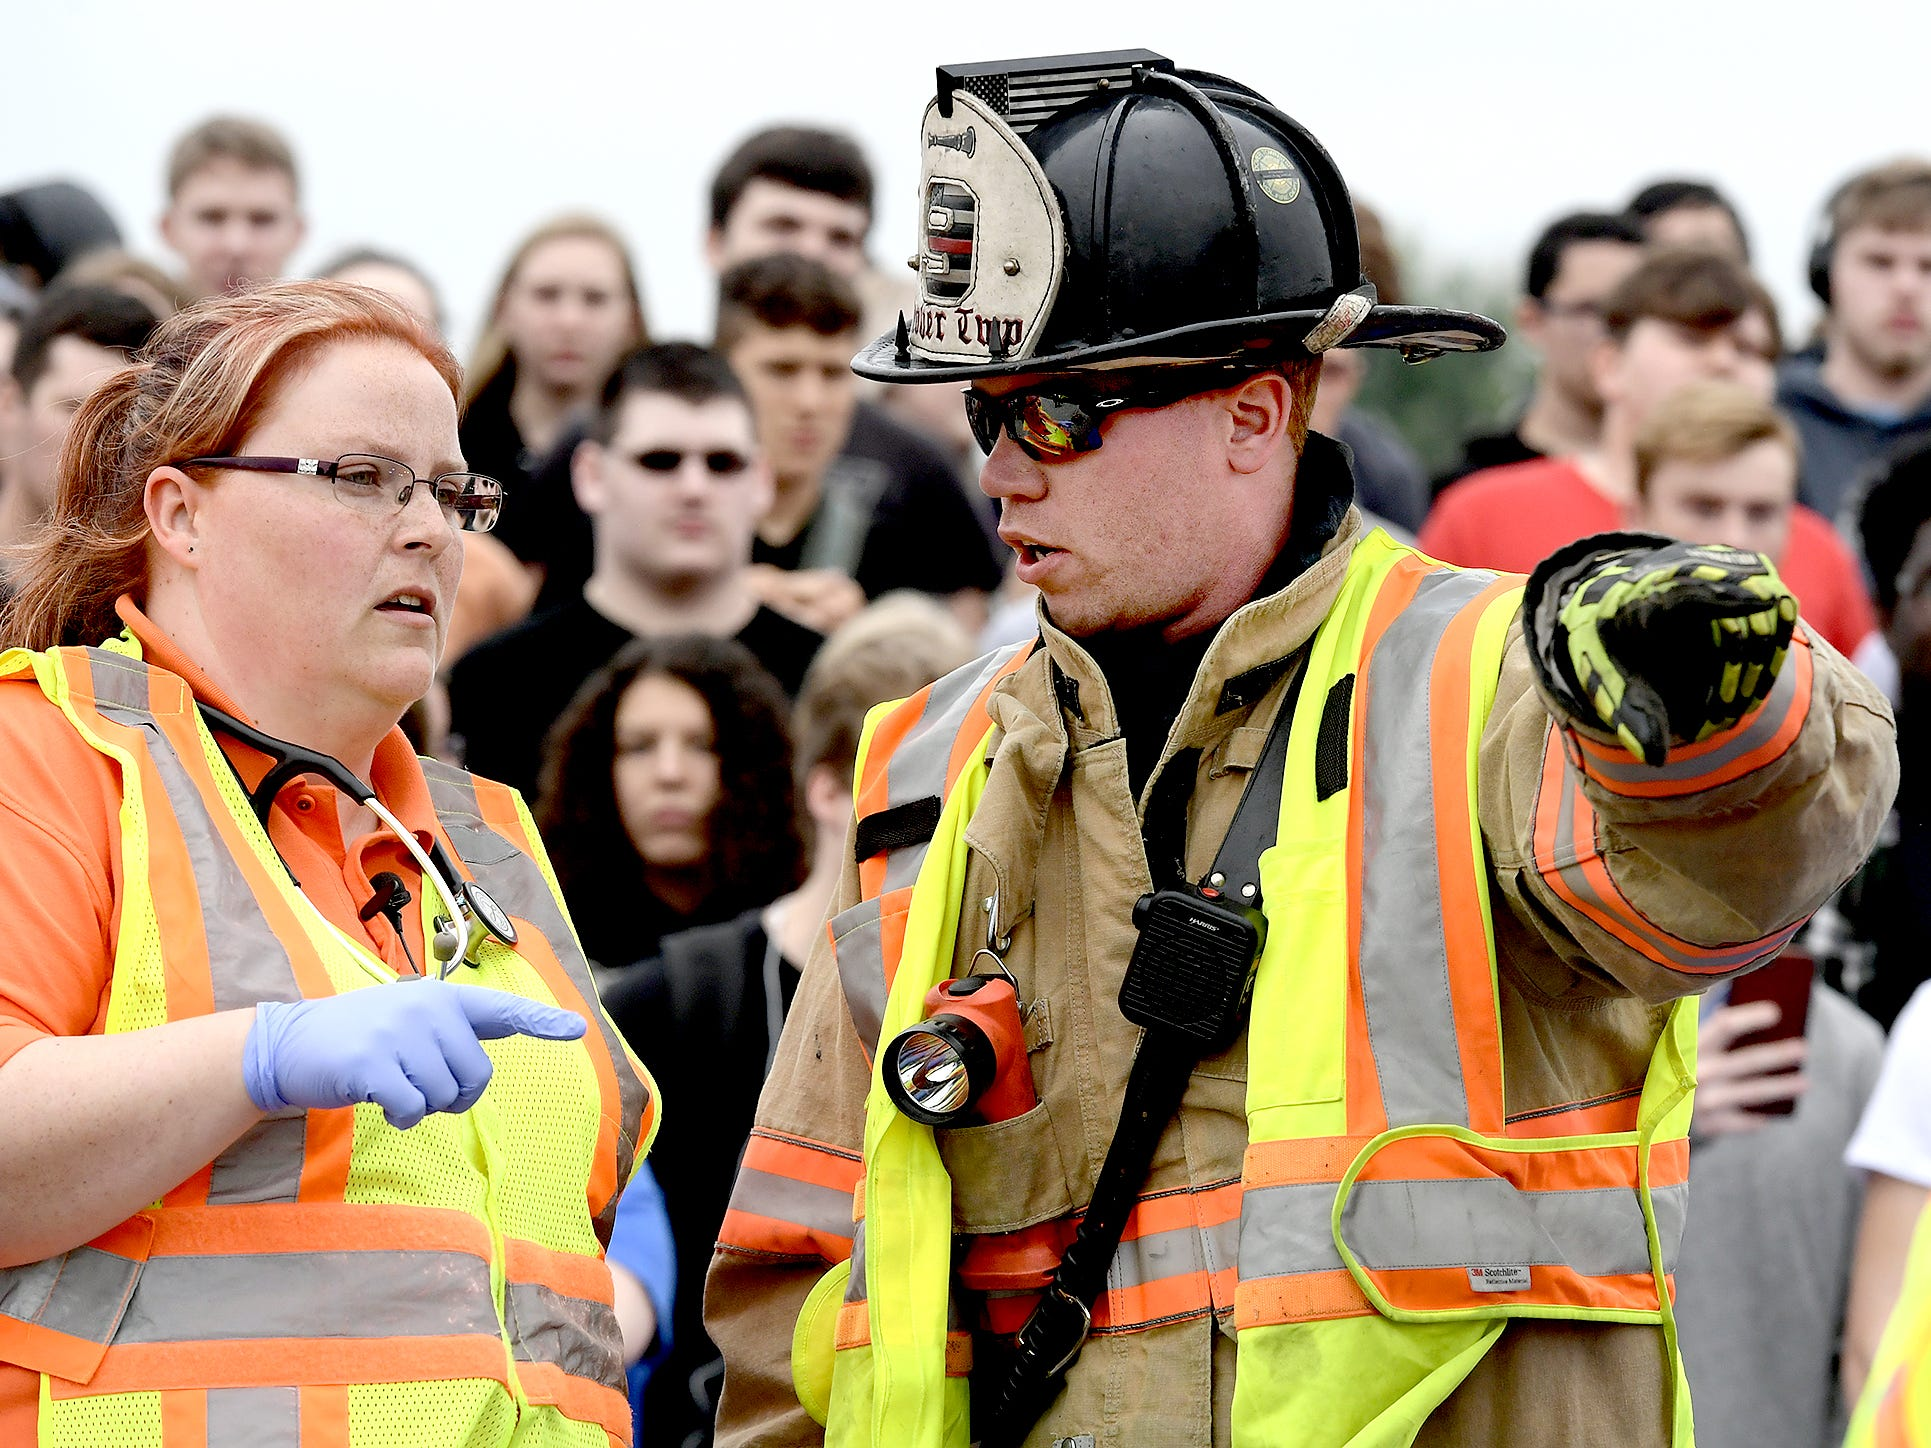 Emergency workers confer during a mock car accident at the Dover Area High School Thursday, May 9, 2019. Local fire, ambulance and police volunteered for the event which reminds high school upperclassmen to be safe during prom season. Dover's prom in Saturday, May 11. Bill Kalina photo